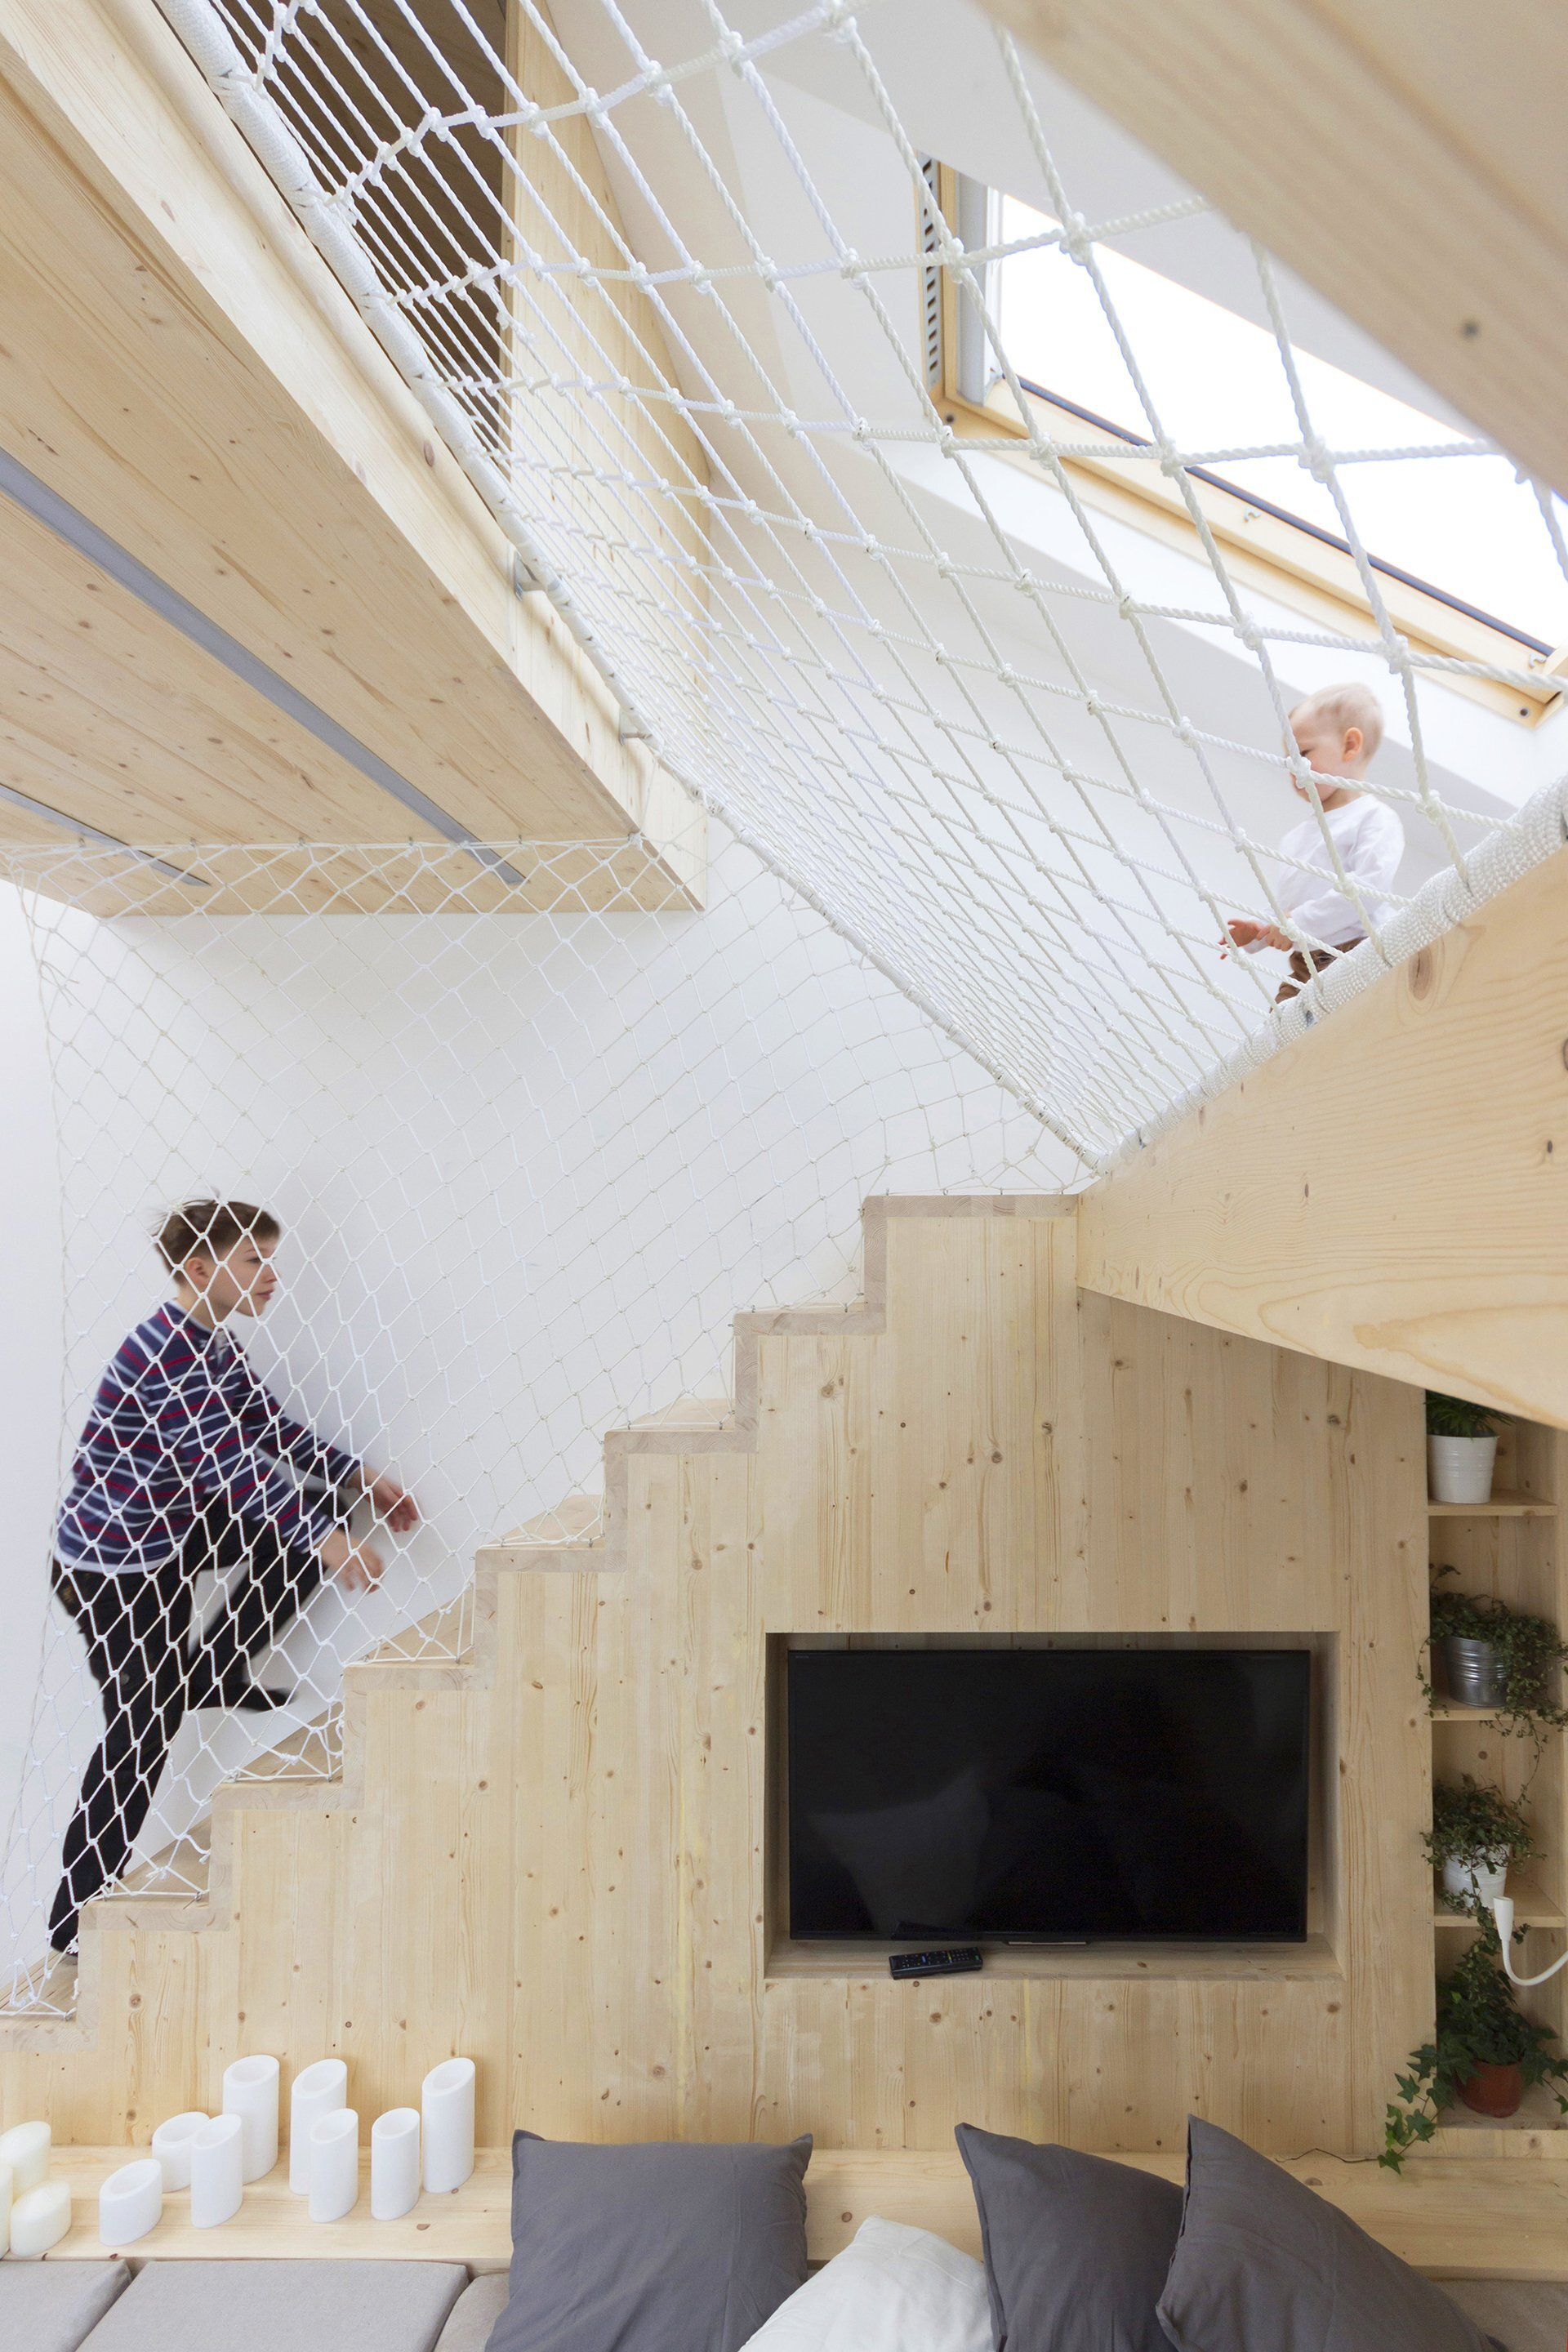 Sleep and Play - Multifunctional Spaces - Ruetemple - Moscow - Netting - Humble Homes